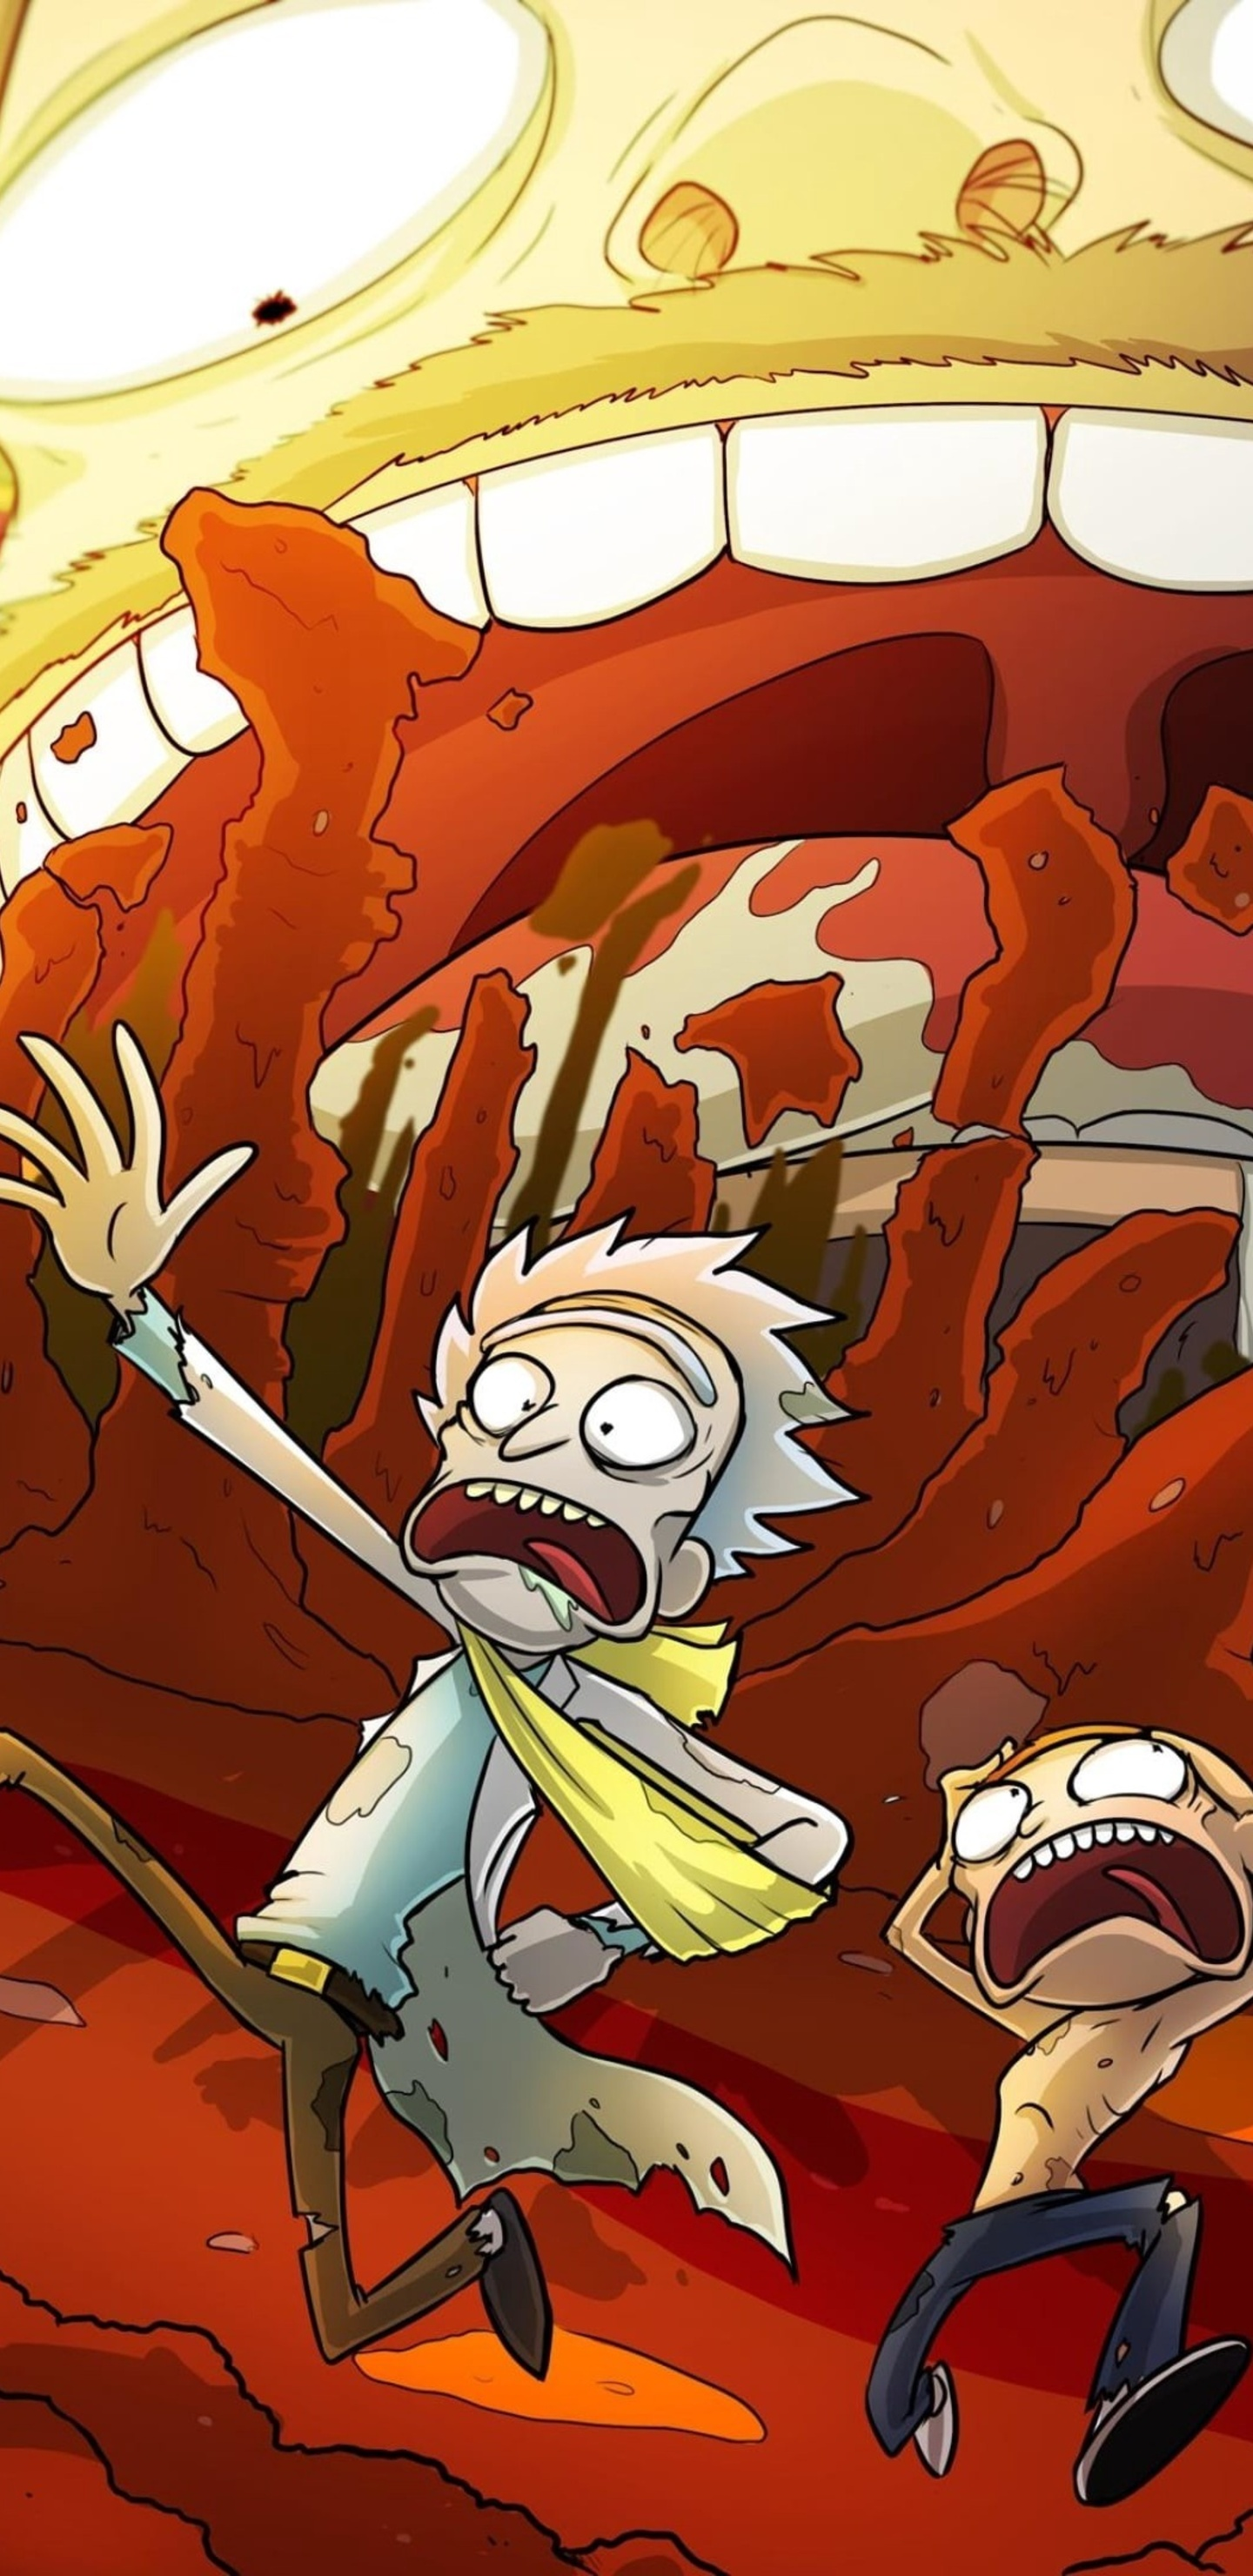 1440x2960 2020 Rick And Morty Samsung Galaxy Note 9,8, S9 ...